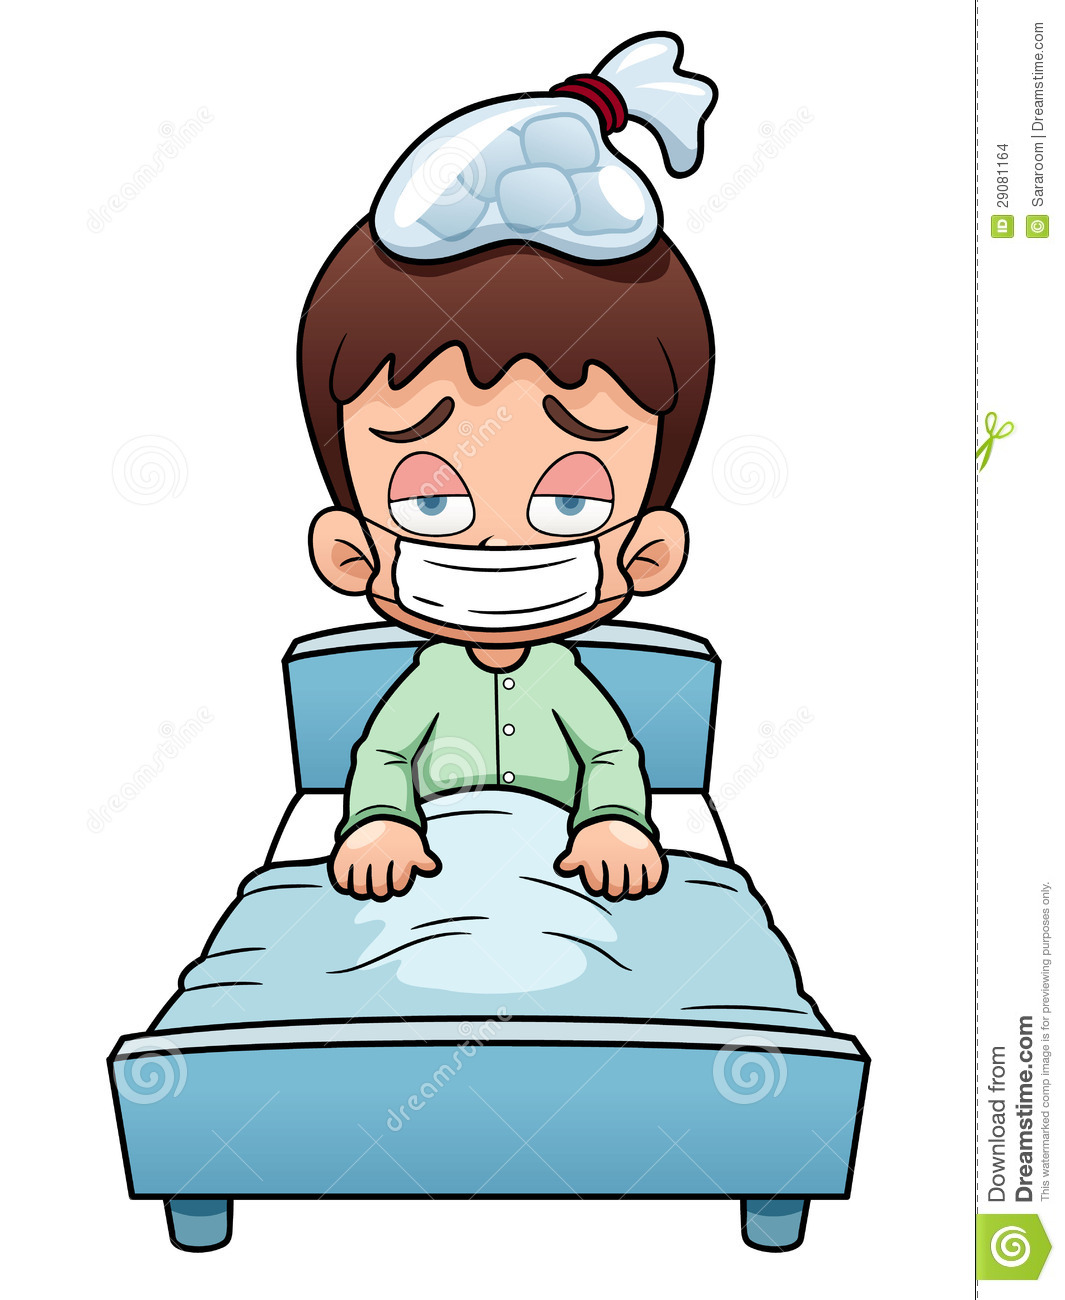 Sick Boy Cartoon Stock Images   Image  29081164